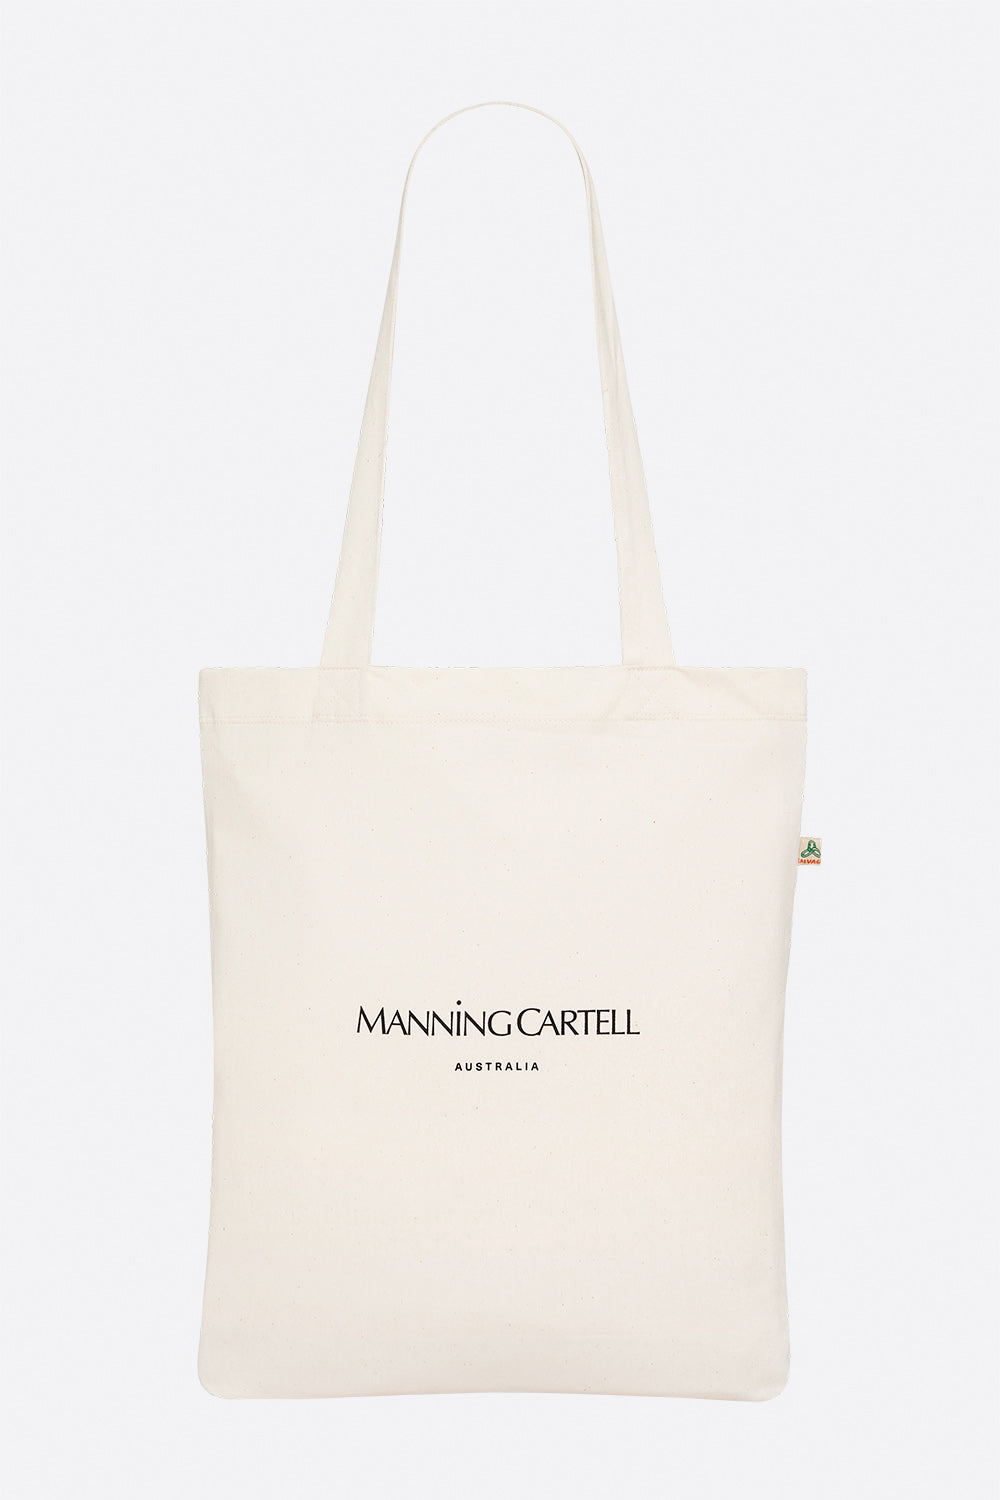 JOIN THE CARTELL TOTE BAG